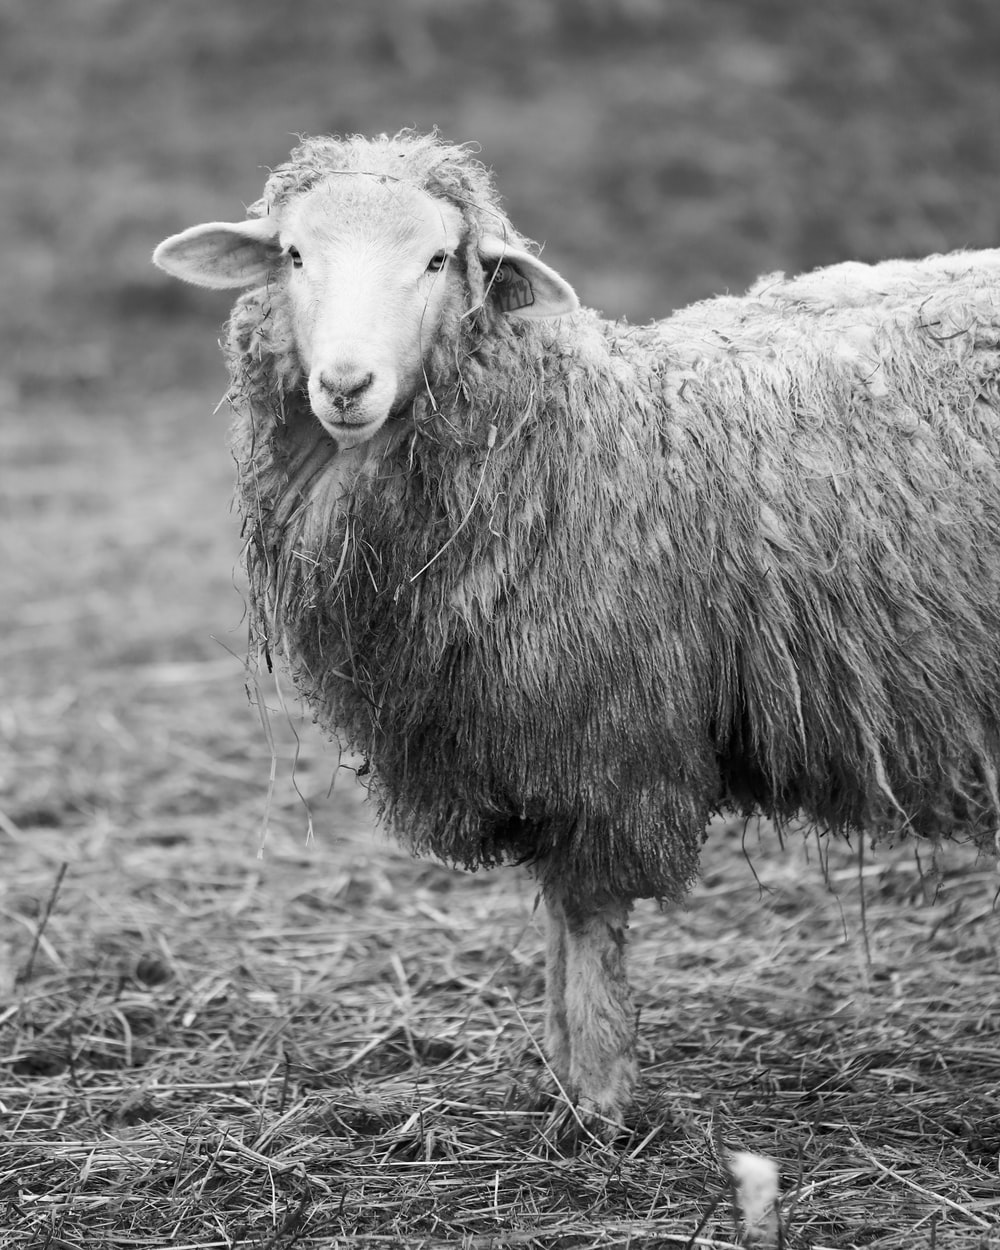 selective focus grayscale photography of lamb